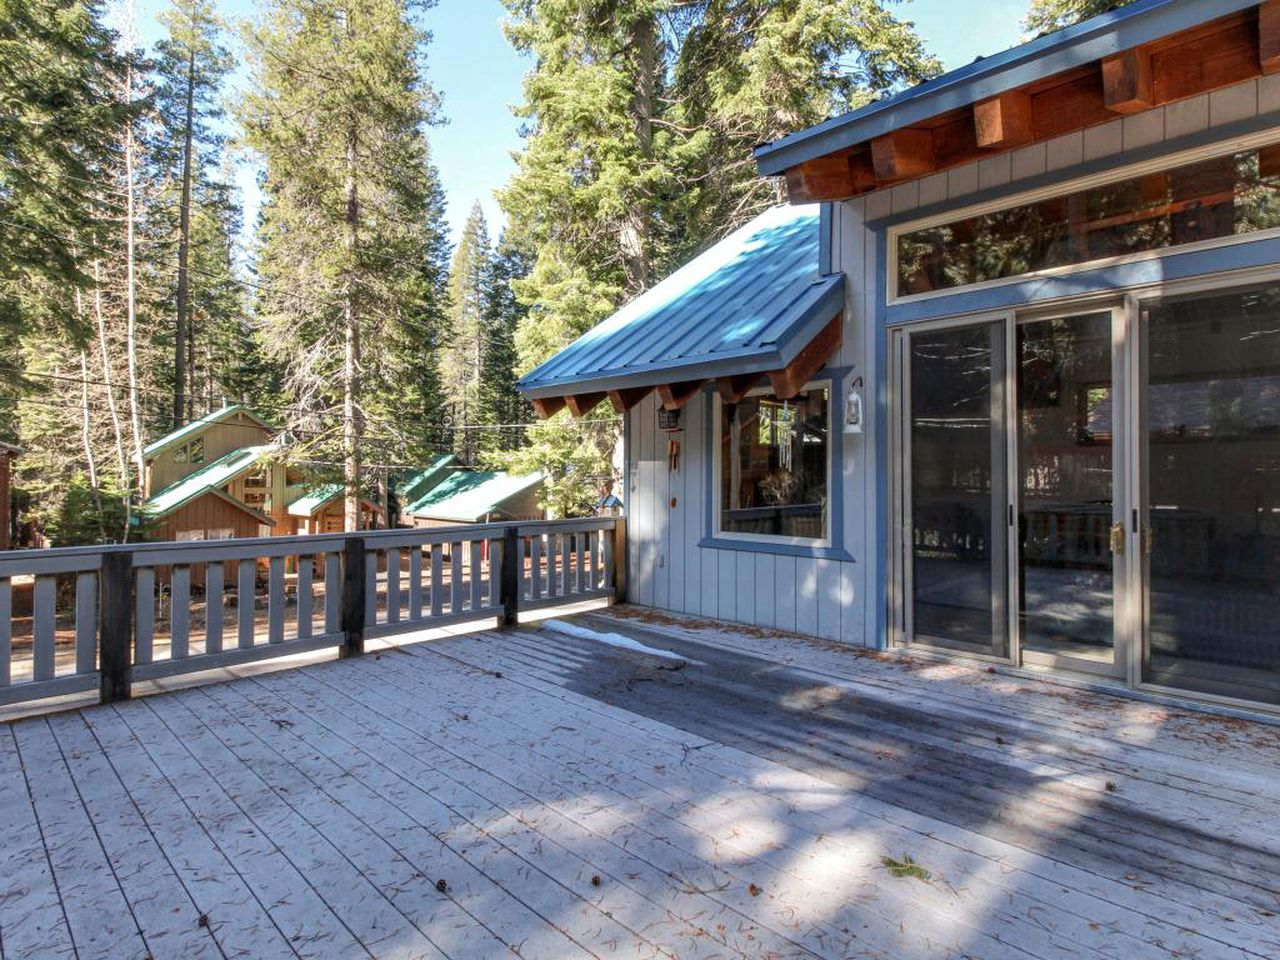 Log Cabins (Truckee, California, United States)